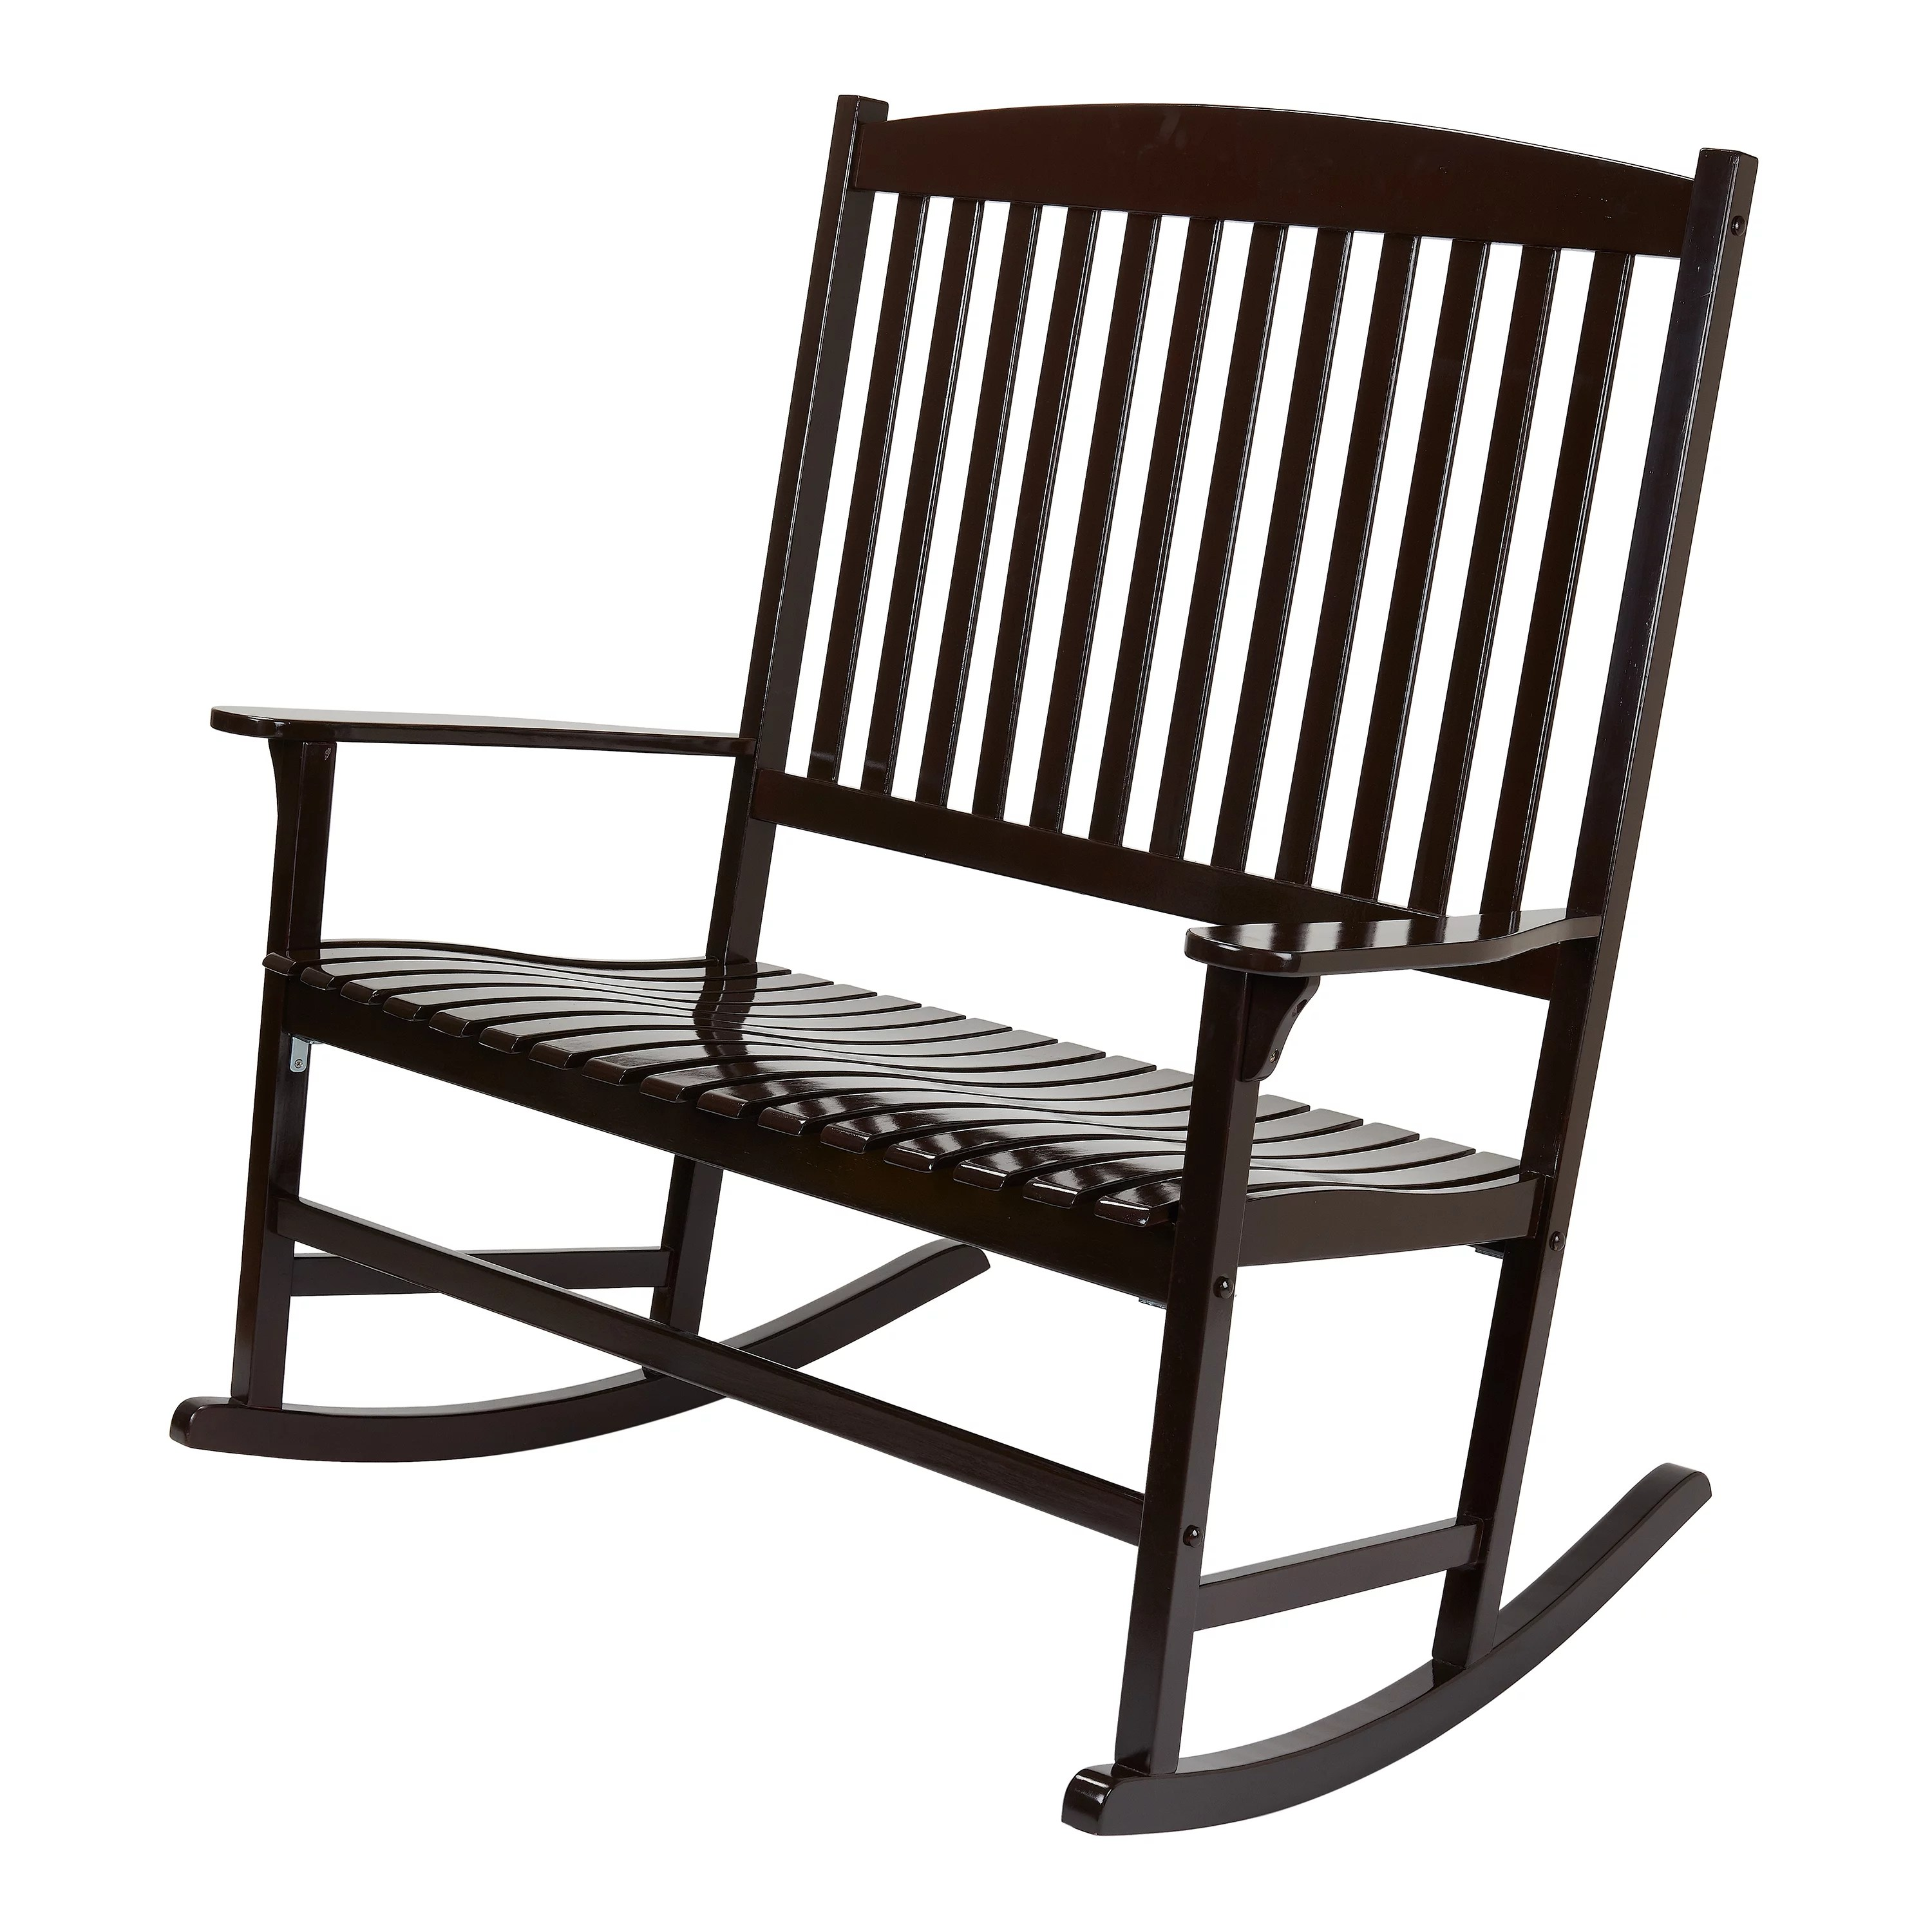 Rocking Chair Mainstays Outdoor 2 Person Double Rocking Chair